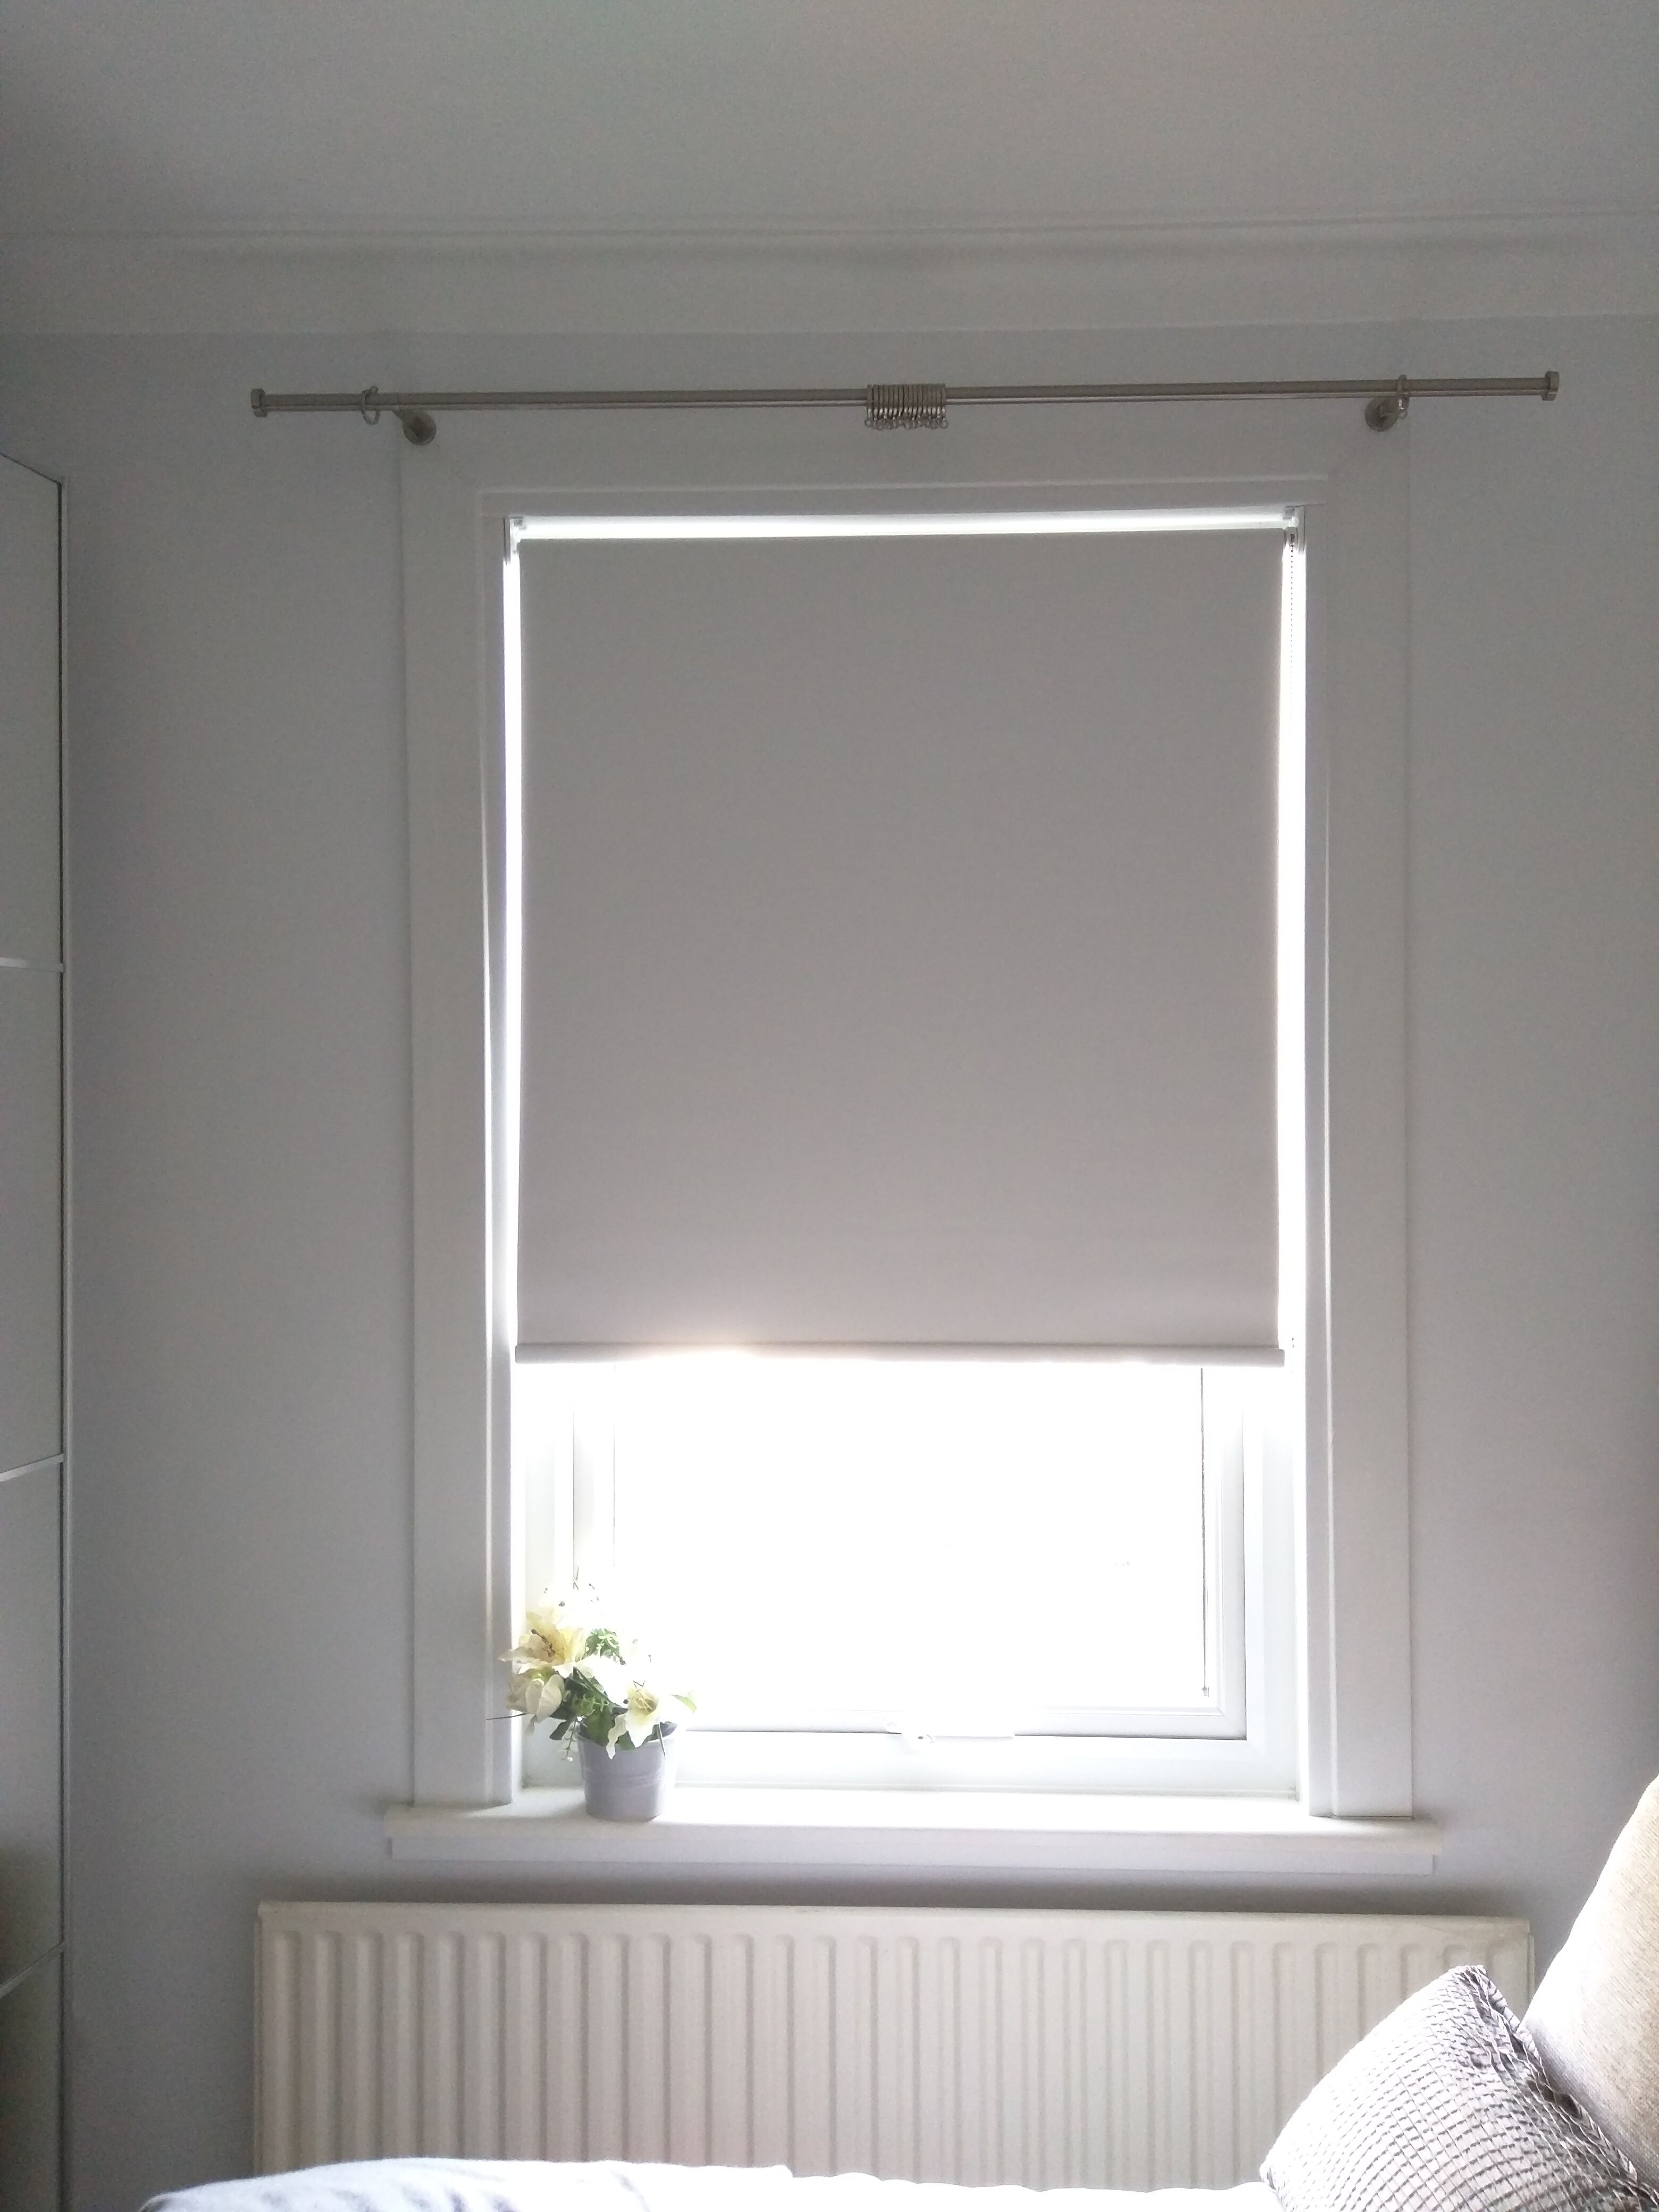 Blackout Bedroom Blinds Magnificent Blackout Roller Blind In Polar White Fitted To Bedroom Window In Decorating Inspiration